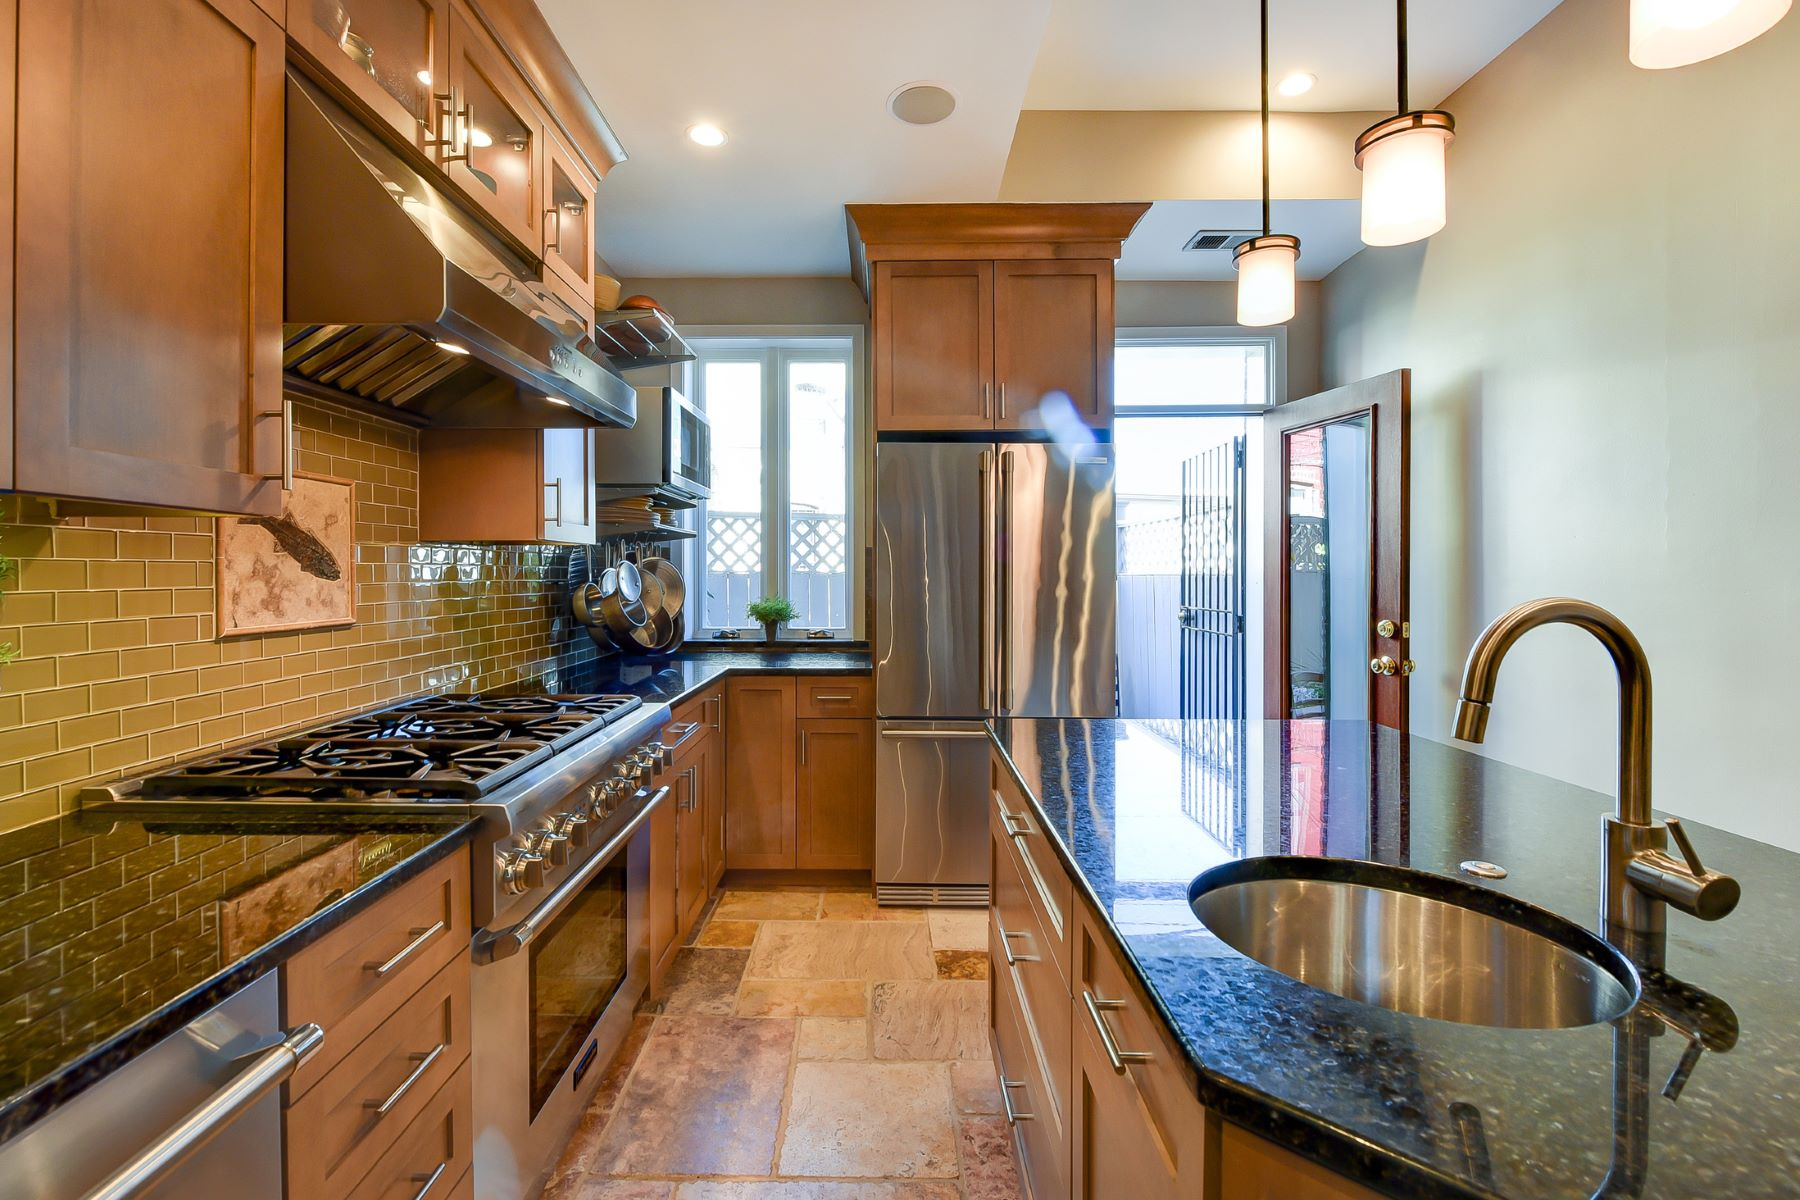 Additional photo for property listing at 1107 P Street NW 1107 P Street NW Washington, District Of Columbia 20005 United States